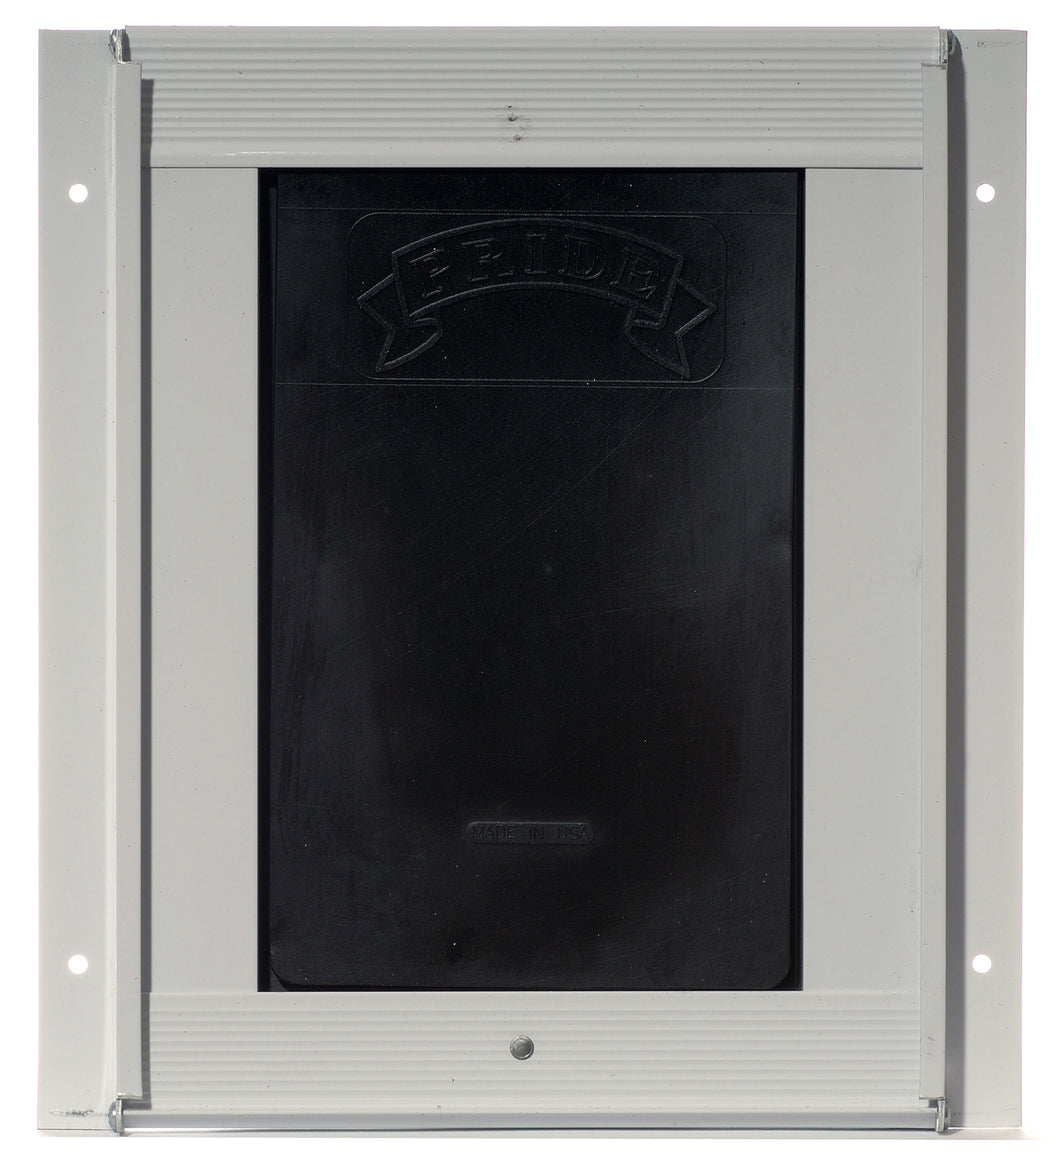 The Pride Pet Doors for Doors dog flap with an off-white wall frame and a black flap.